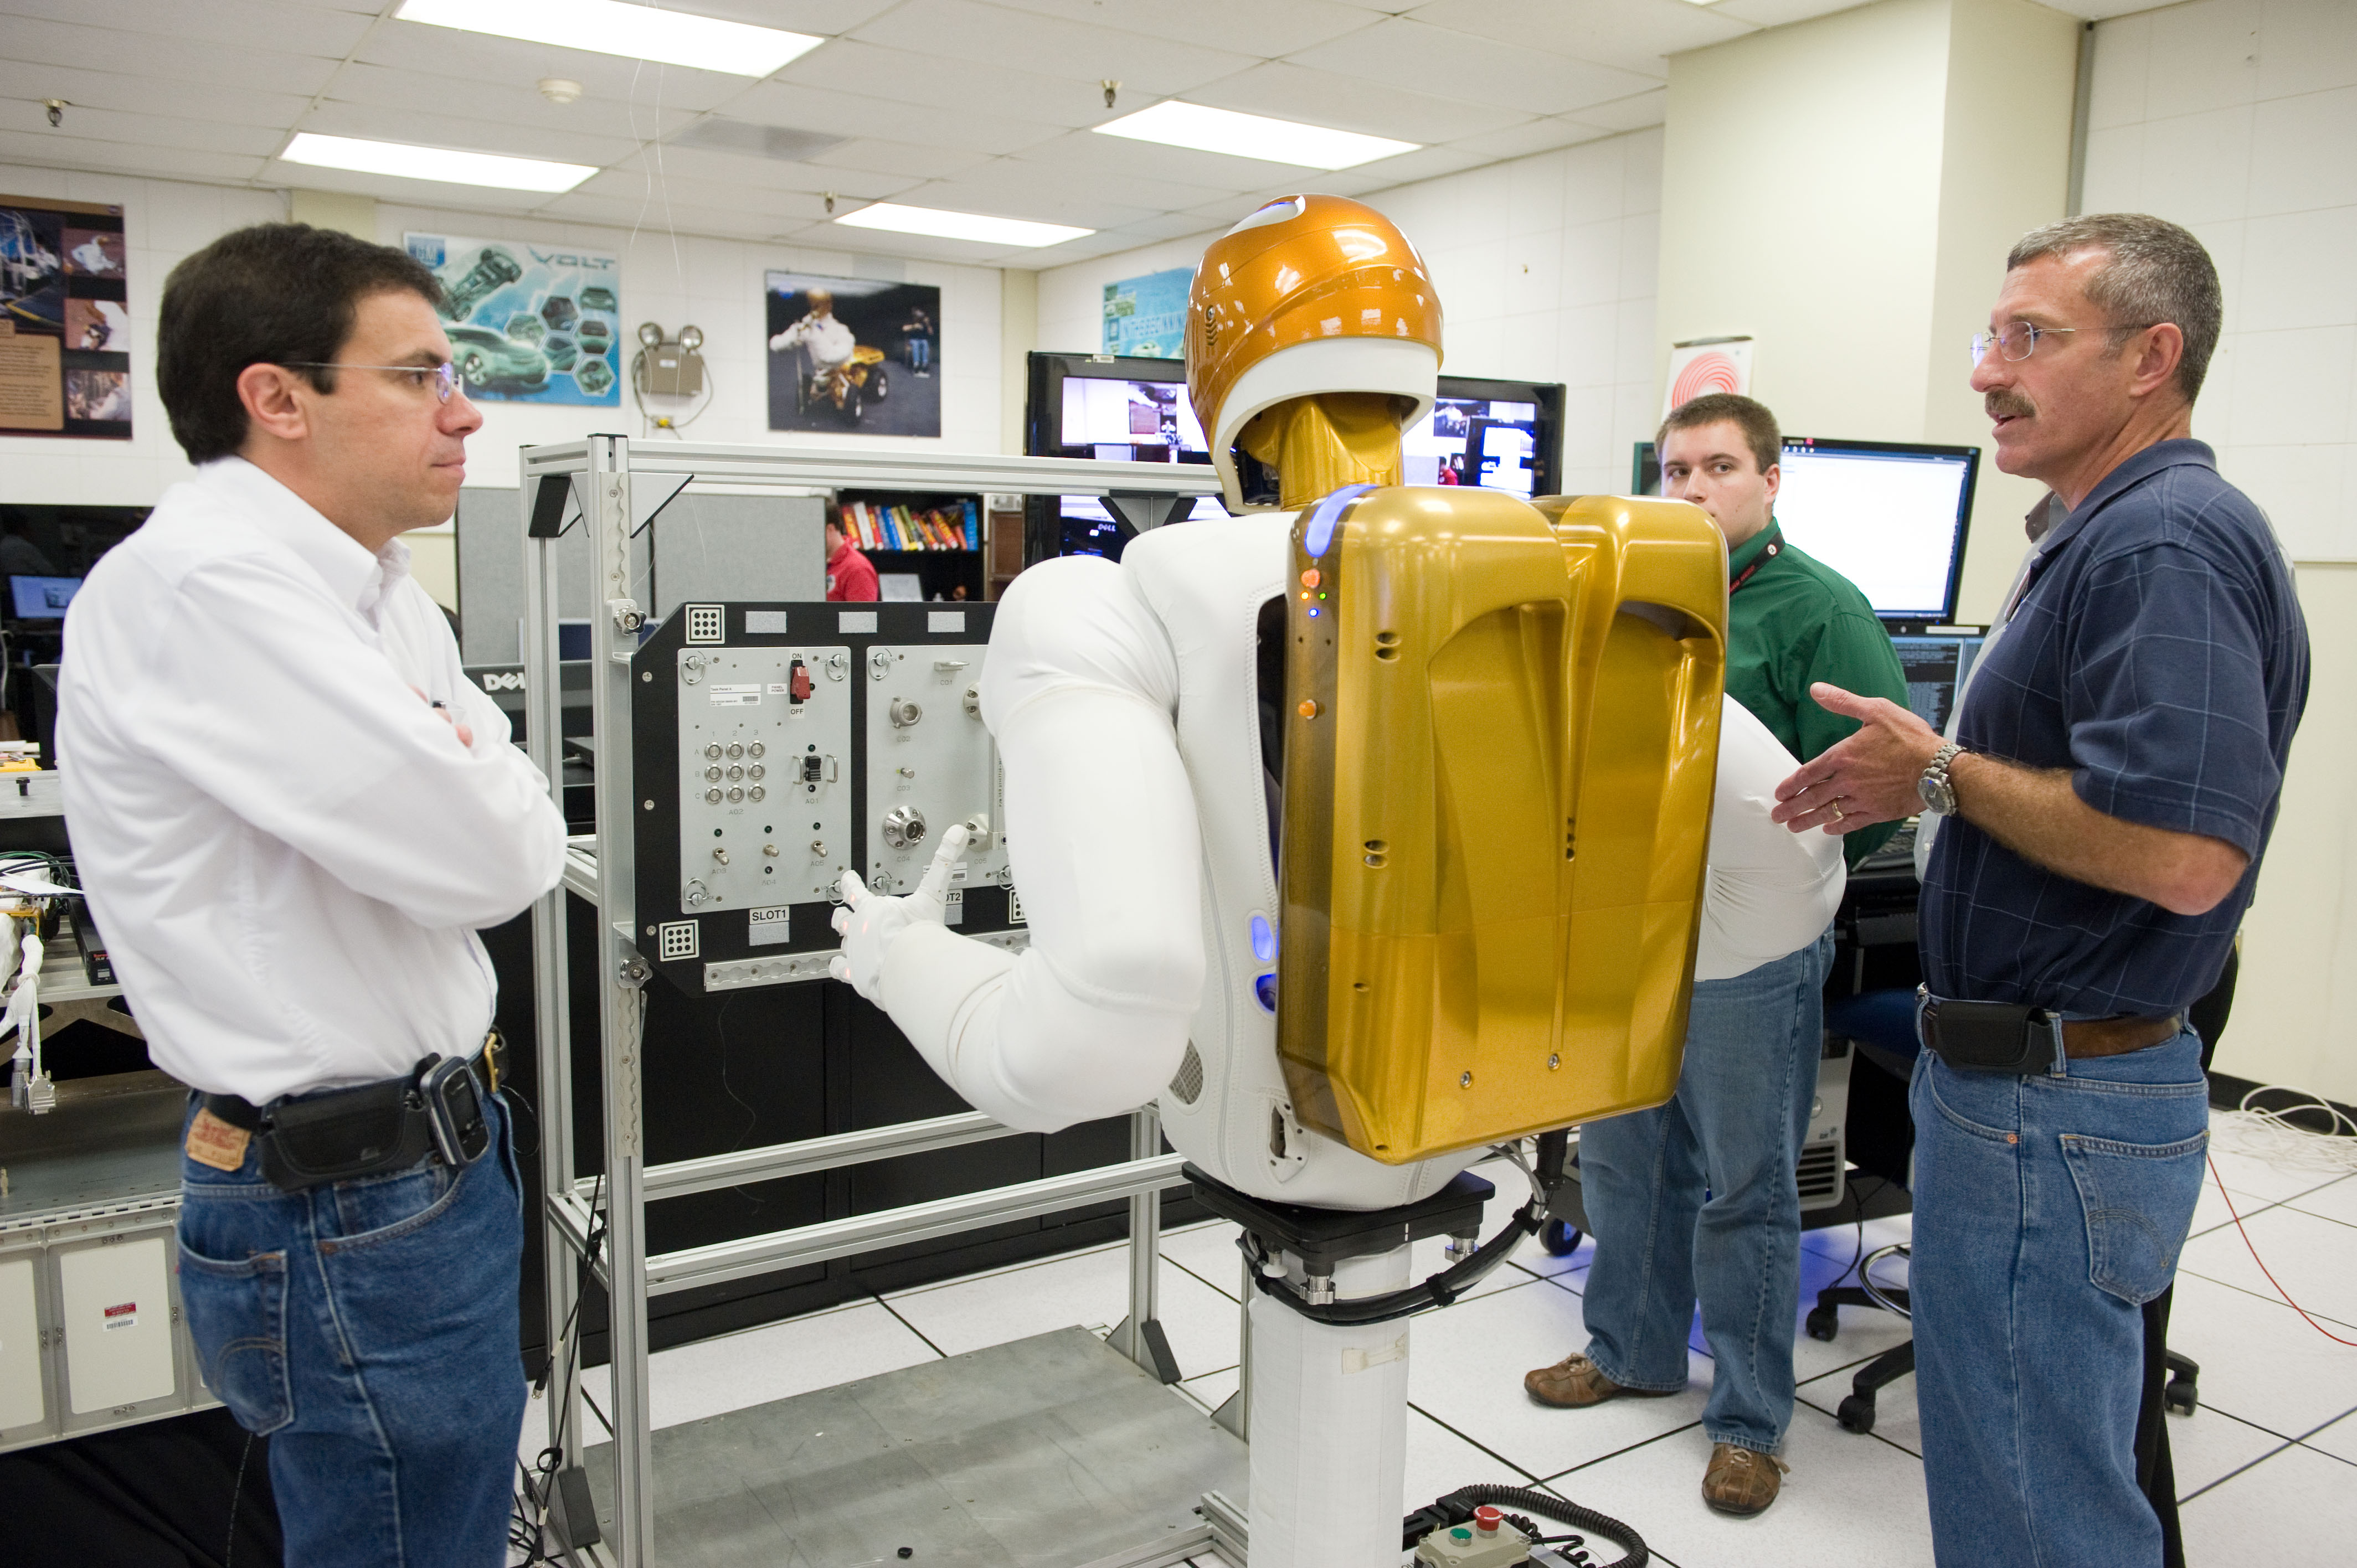 robonaut_2s_back - Industrial Engineering Job Description